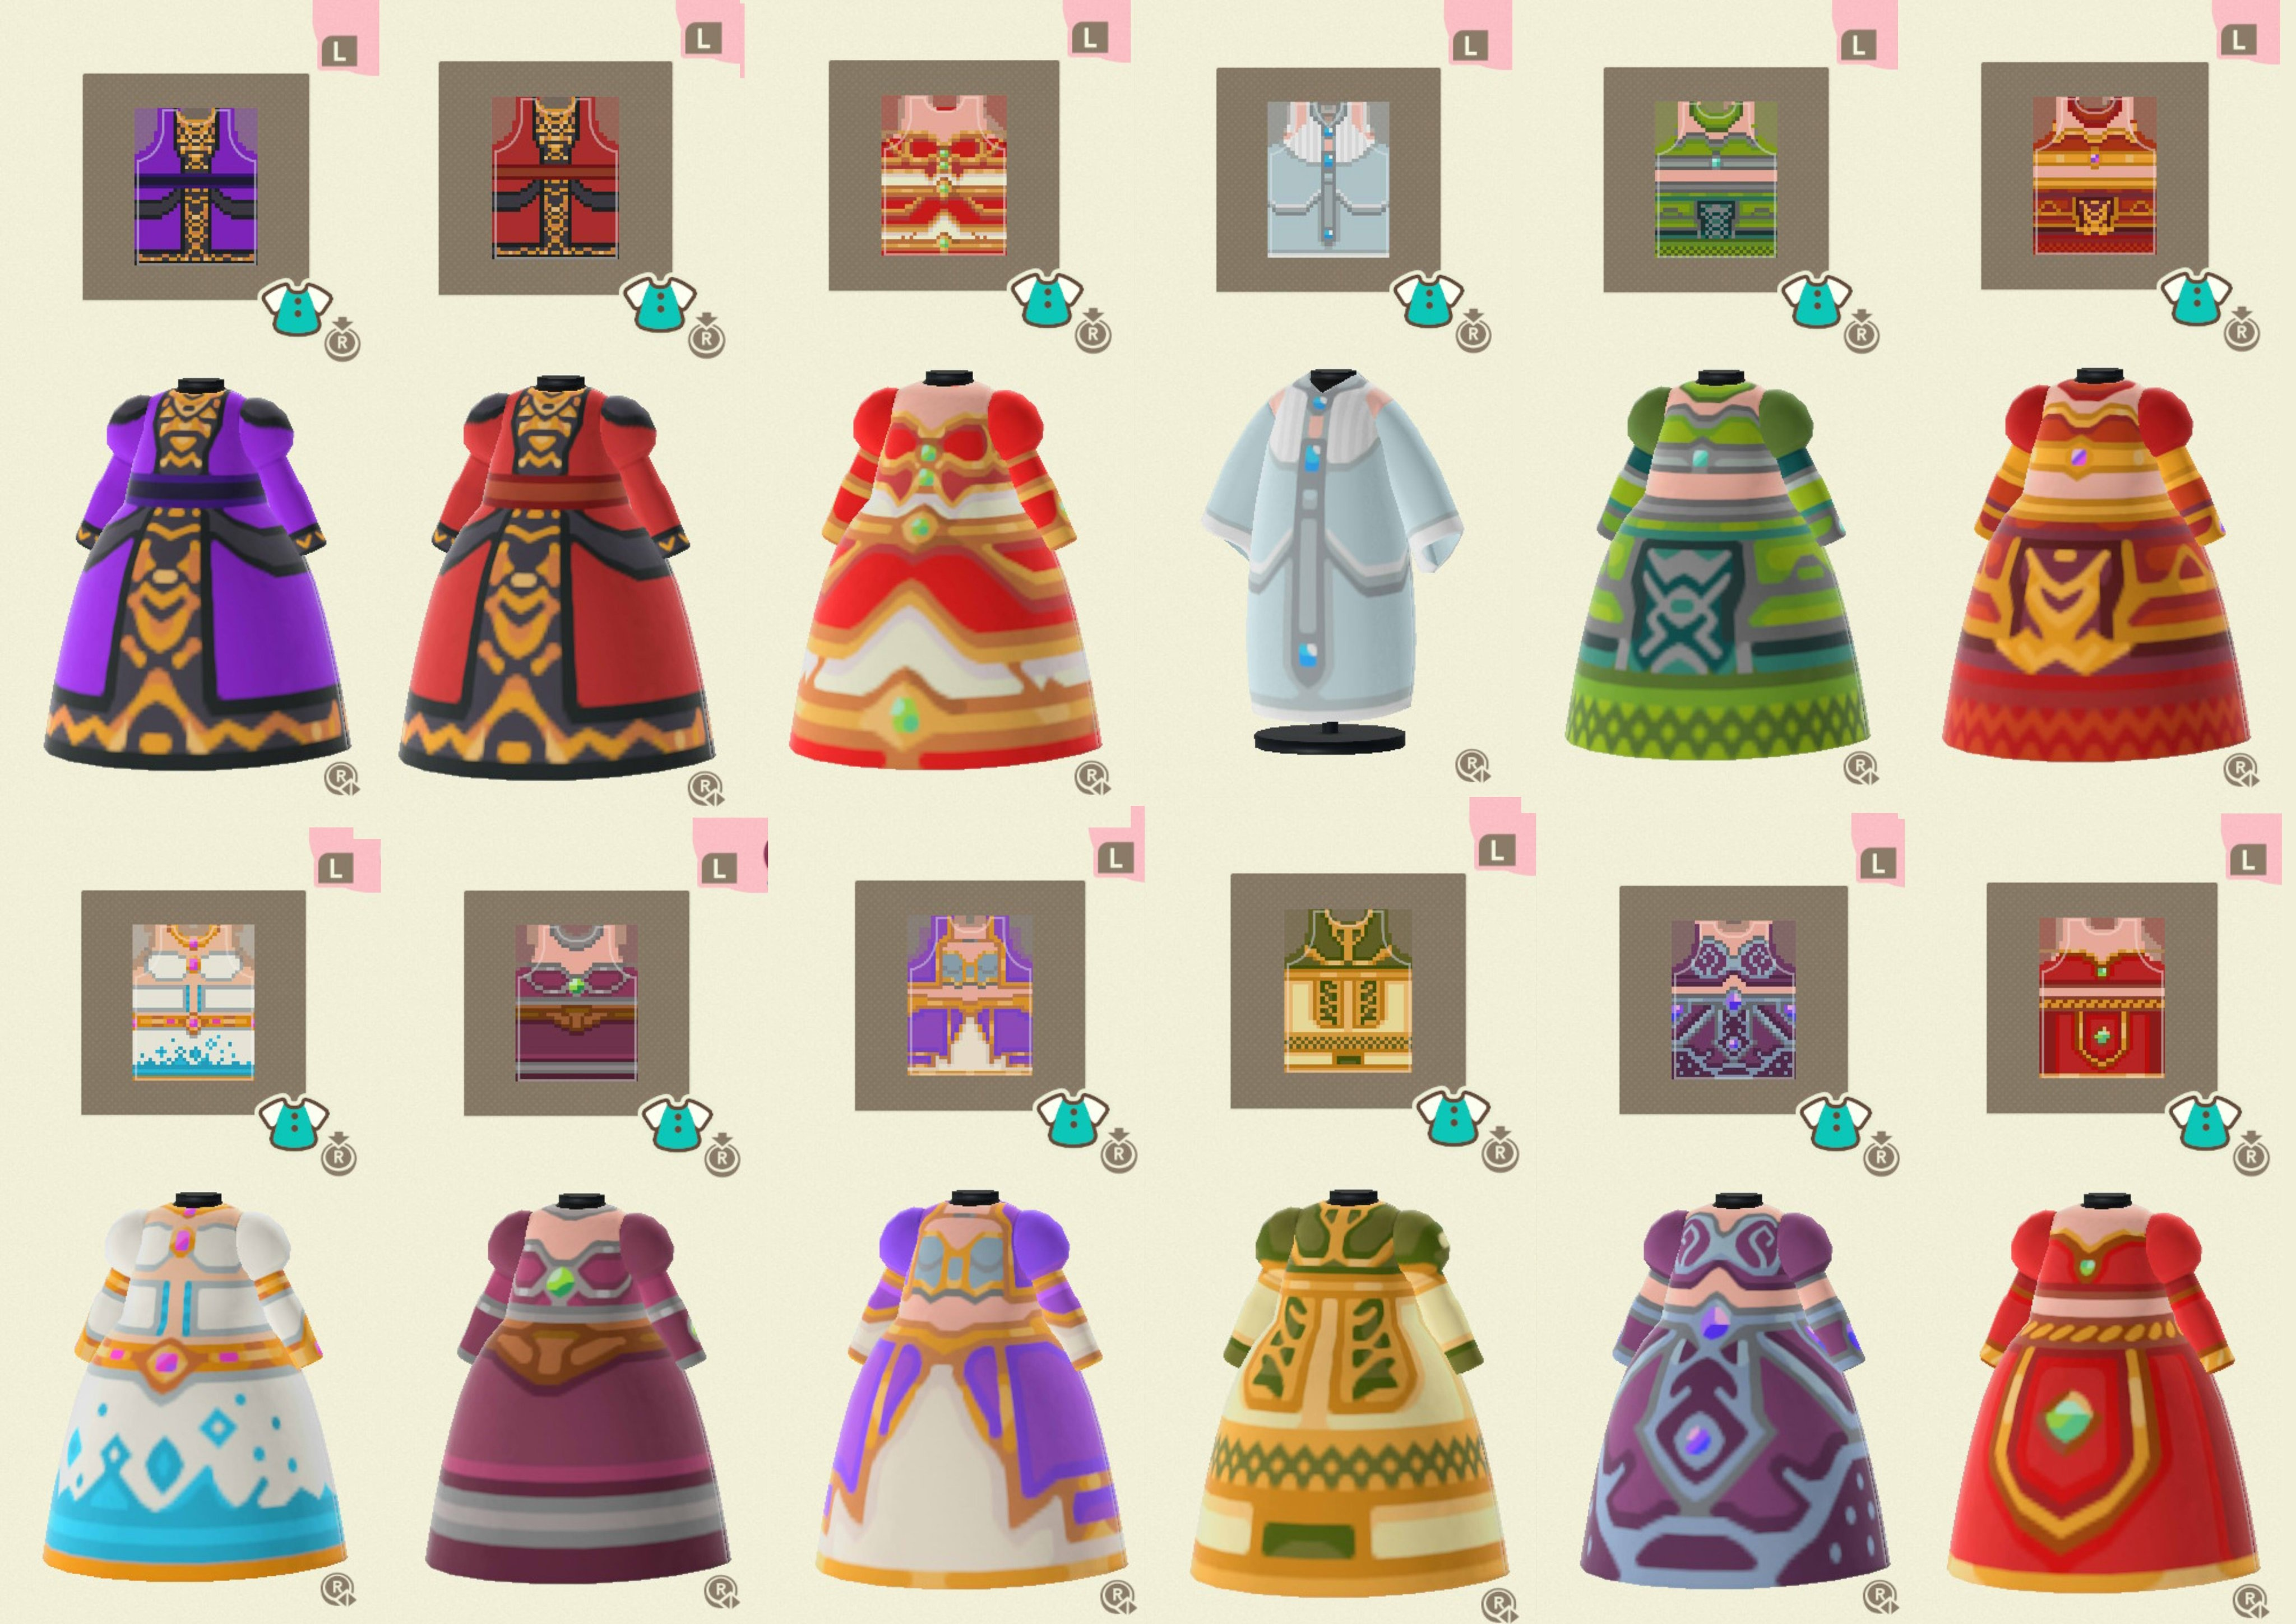 WoW Dresses Recreated in Animal Crossing: New Horizons by Kuridel